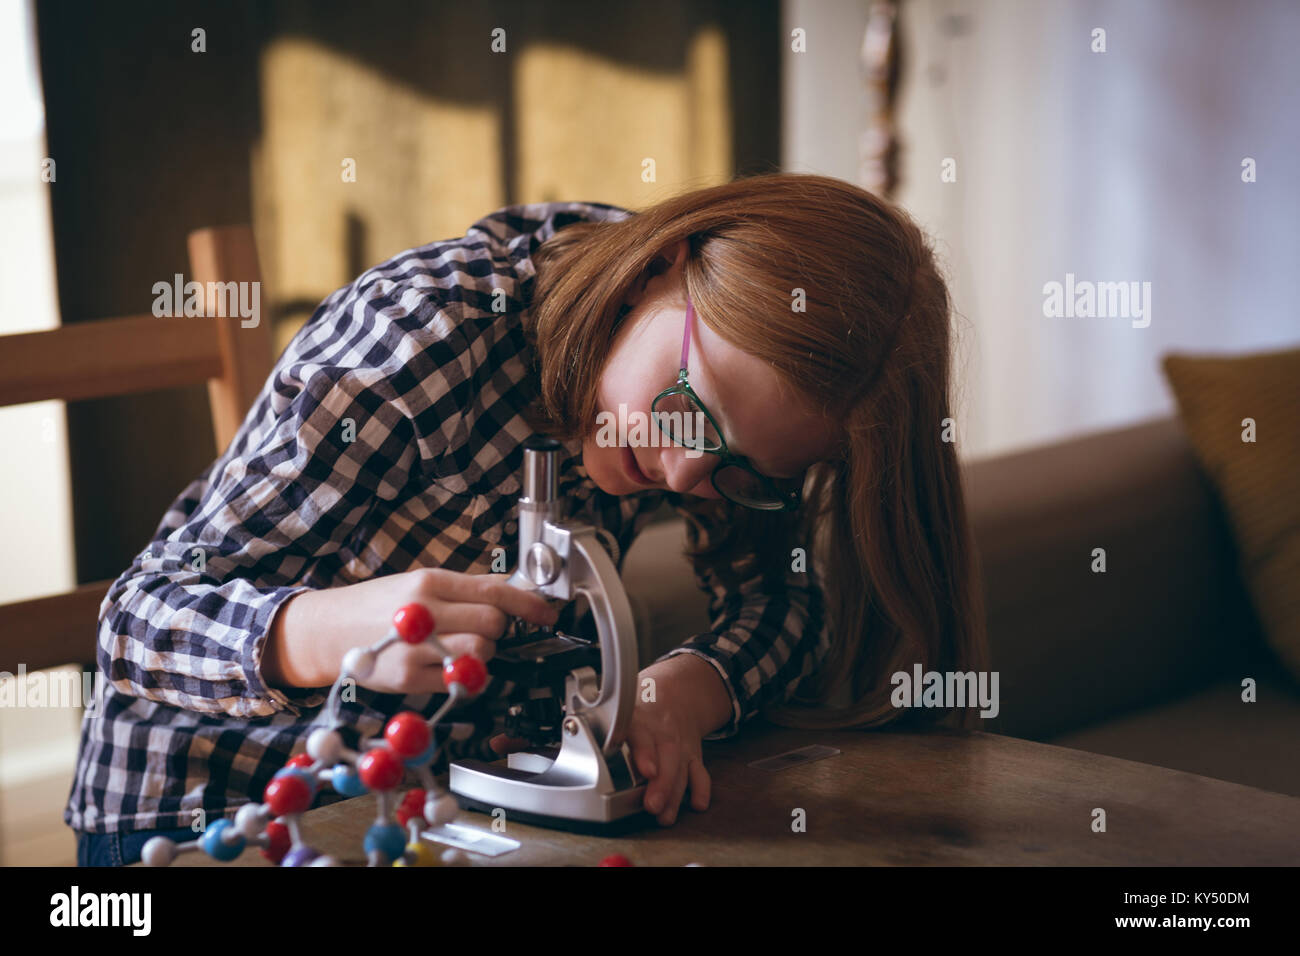 Girl experimenting molecule on microscope - Stock Image